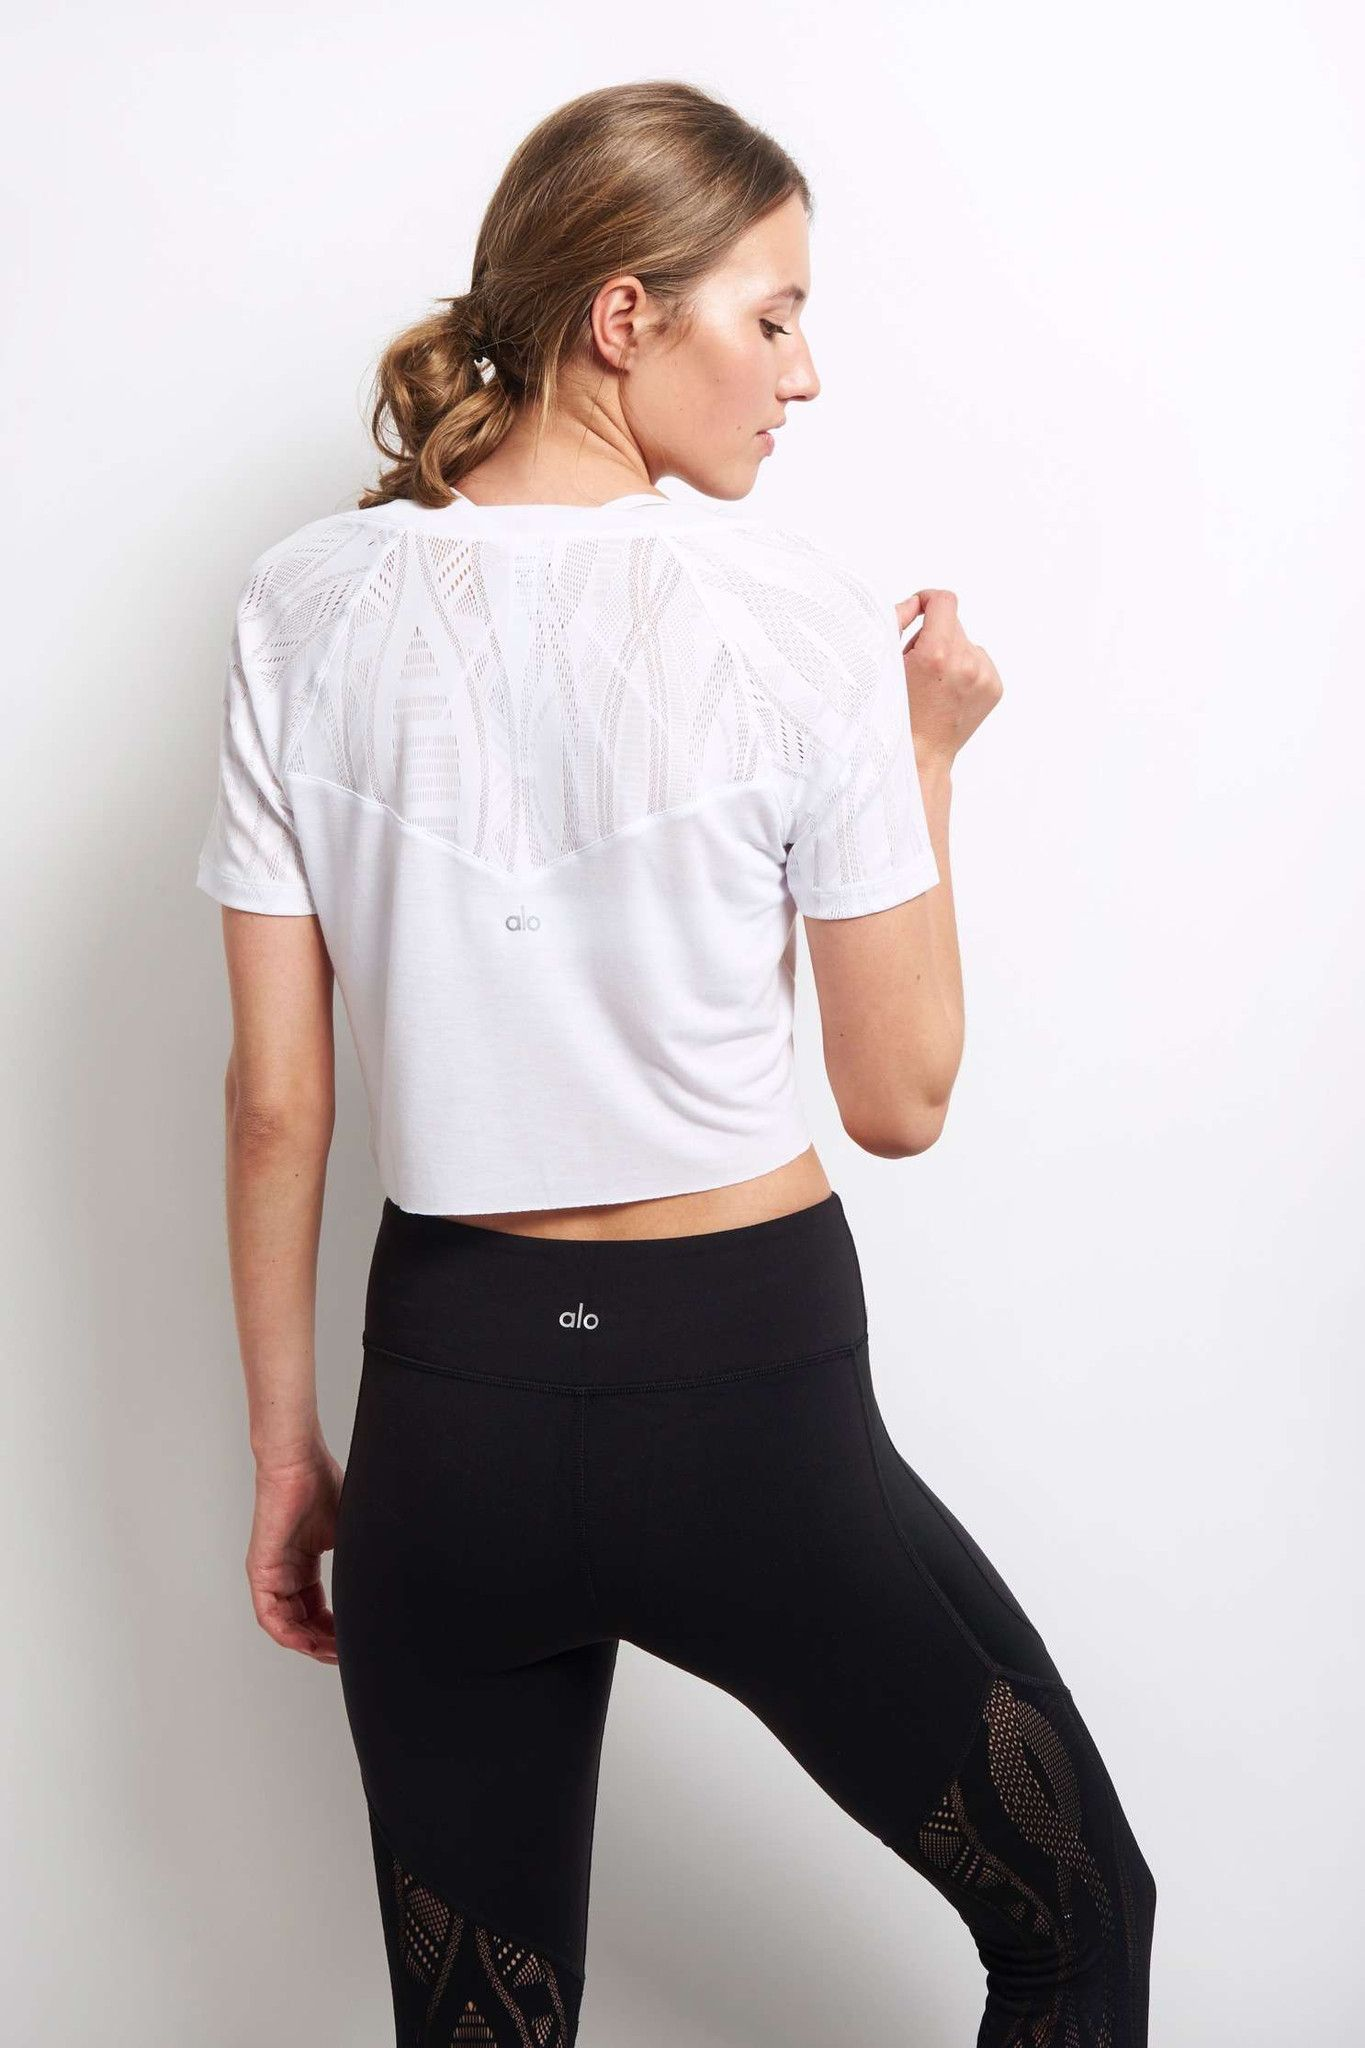 Alo Yoga Sport Short Sleeve Top - White image 3 - The Sports Edit